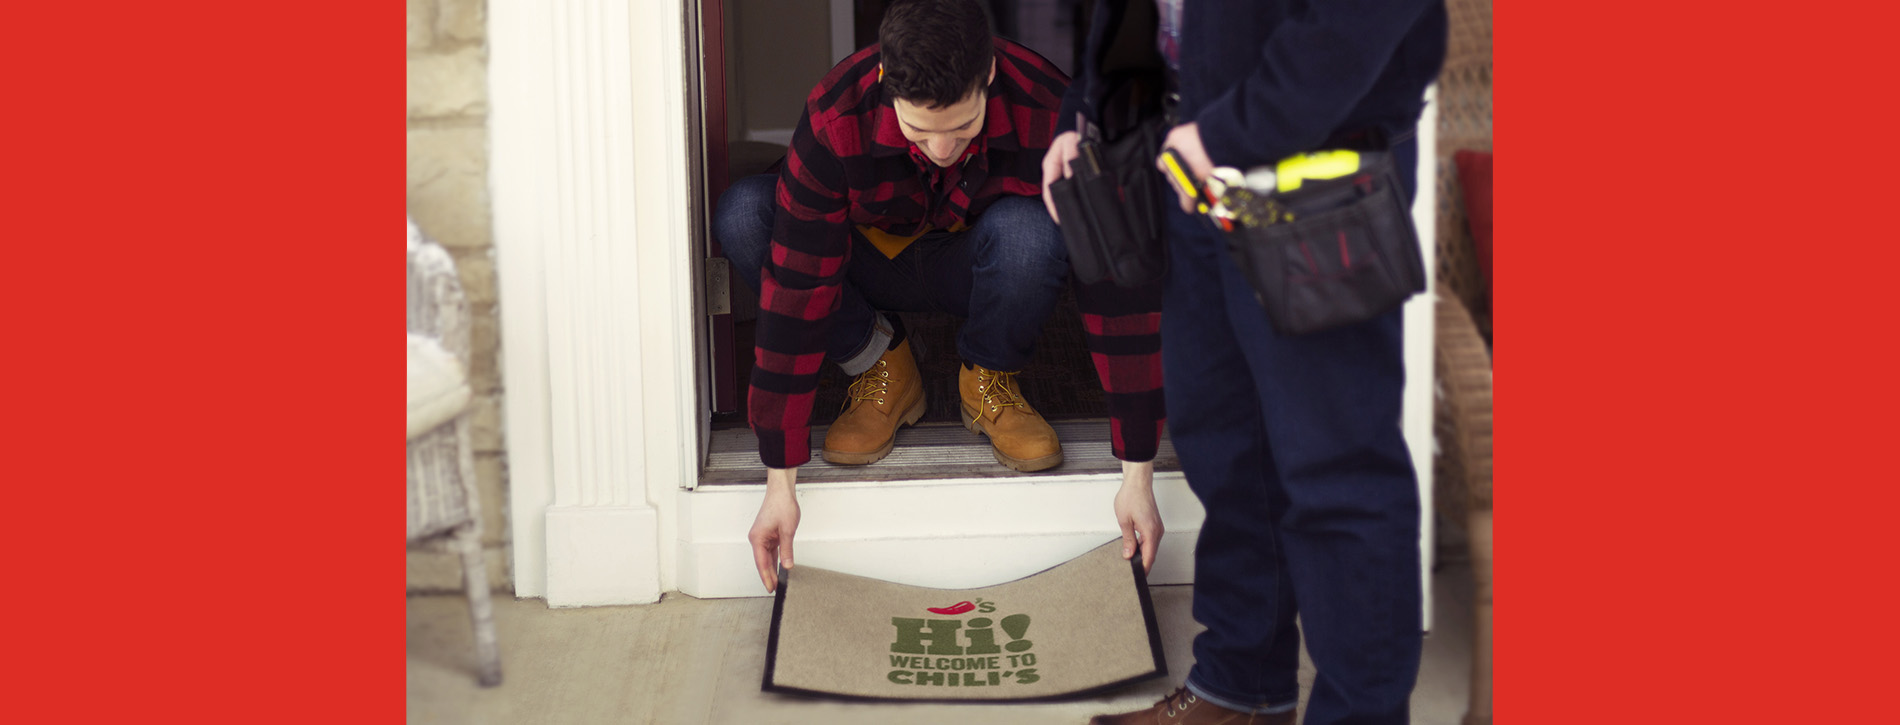 Man placing doormat in front of door.